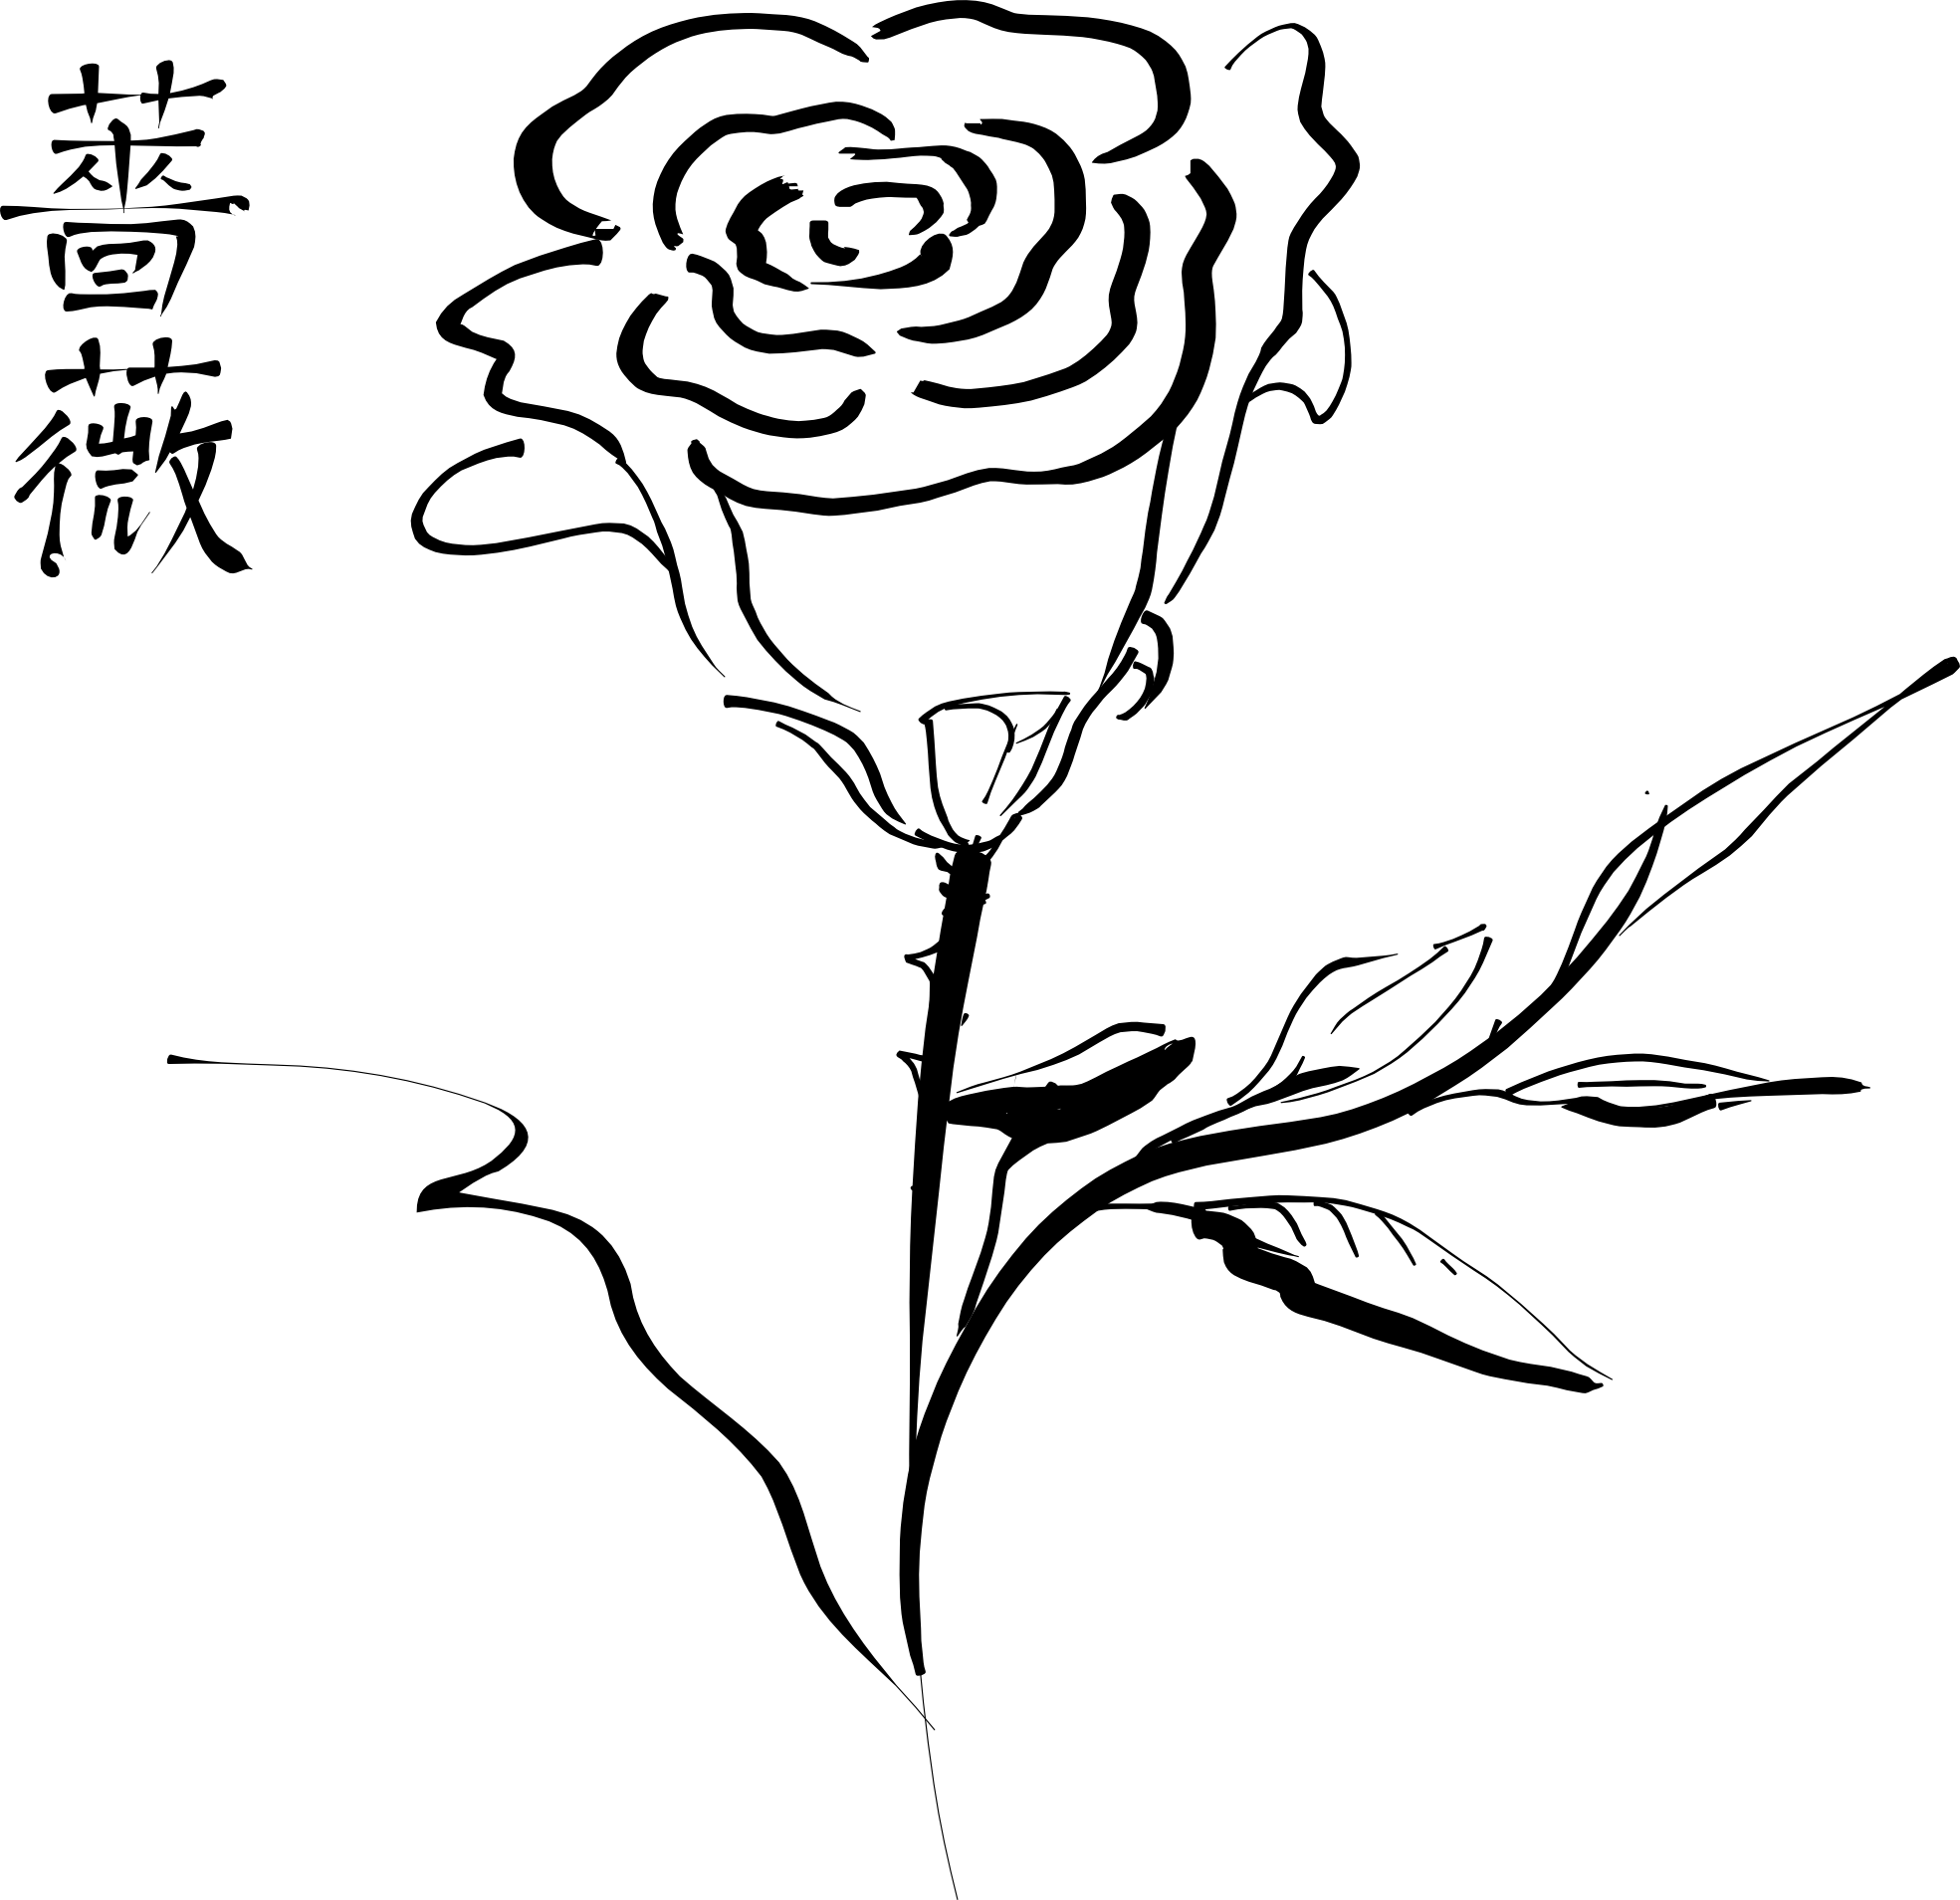 Line Art Rose : Rose line drawings clipart best